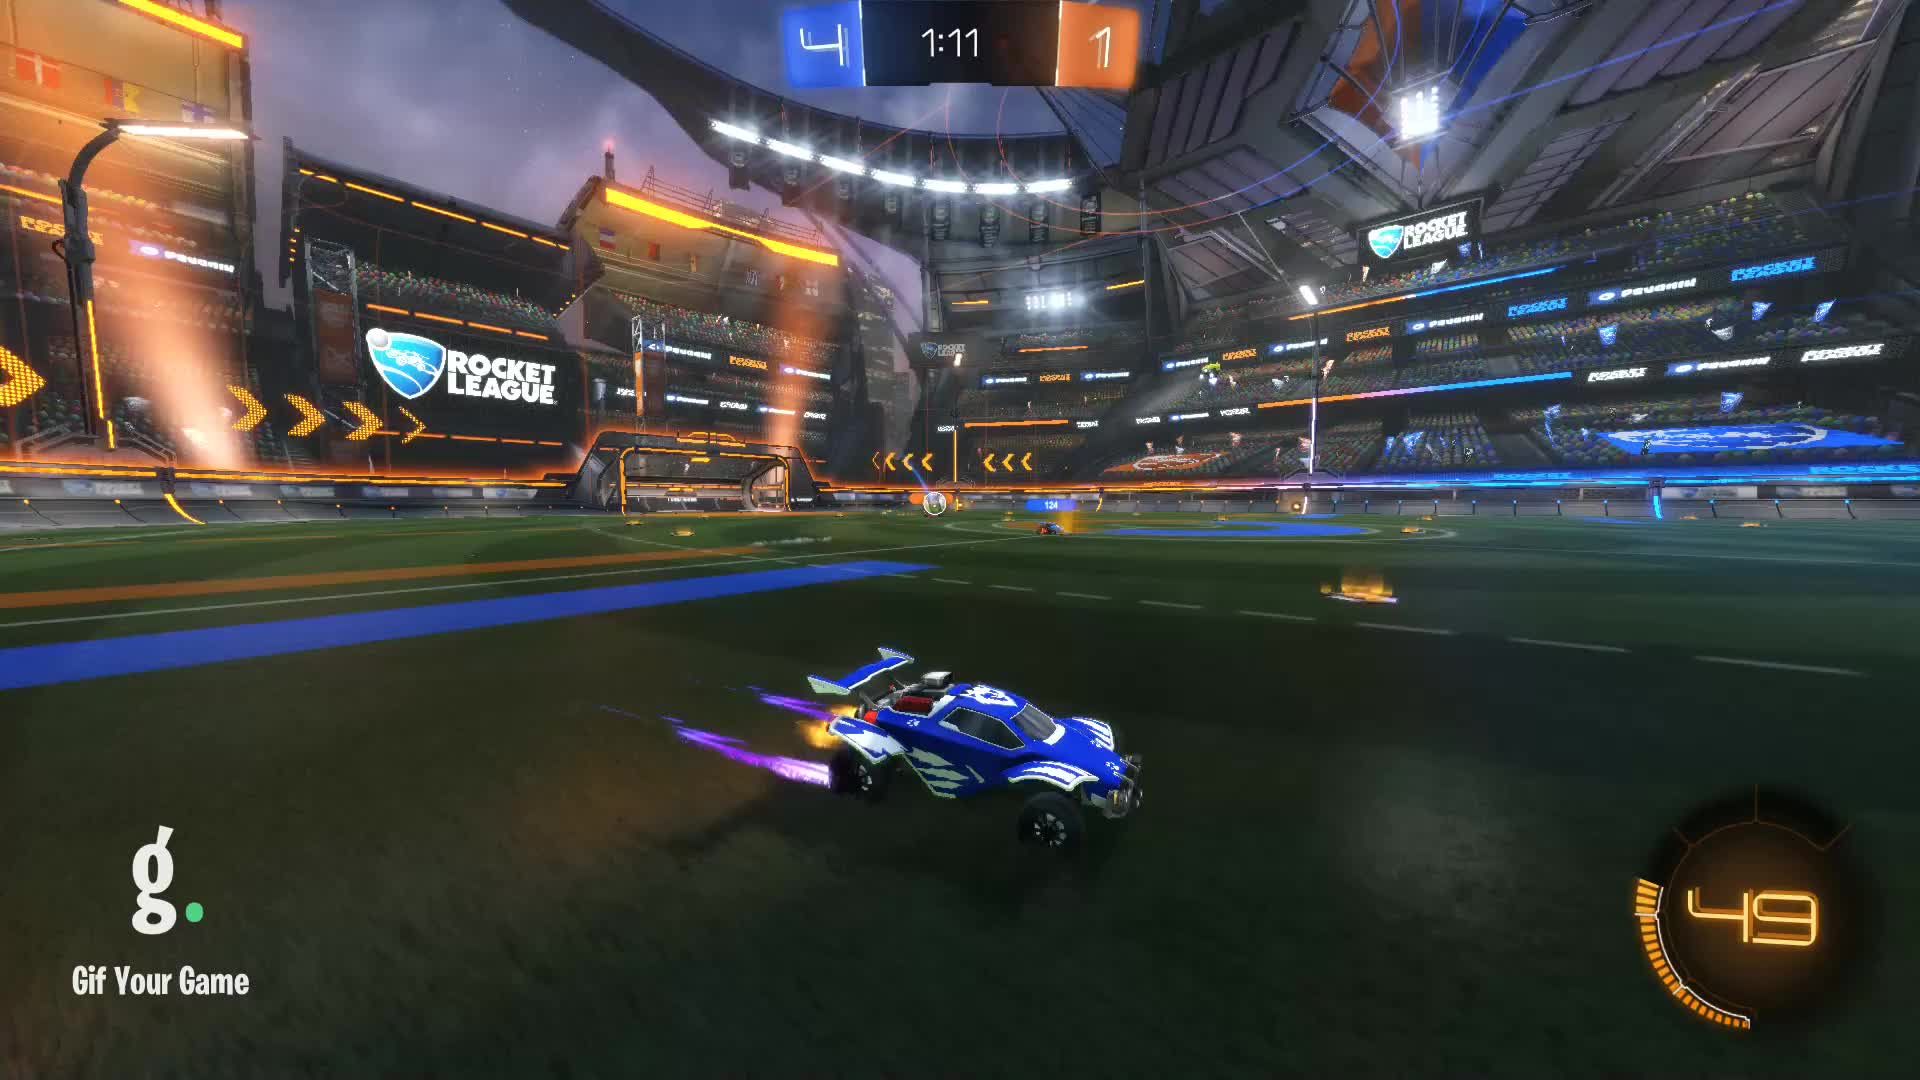 Drippy, Gif Your Game, GifYourGame, Goal, Rocket League, RocketLeague, Goal 6: Drippy GIFs